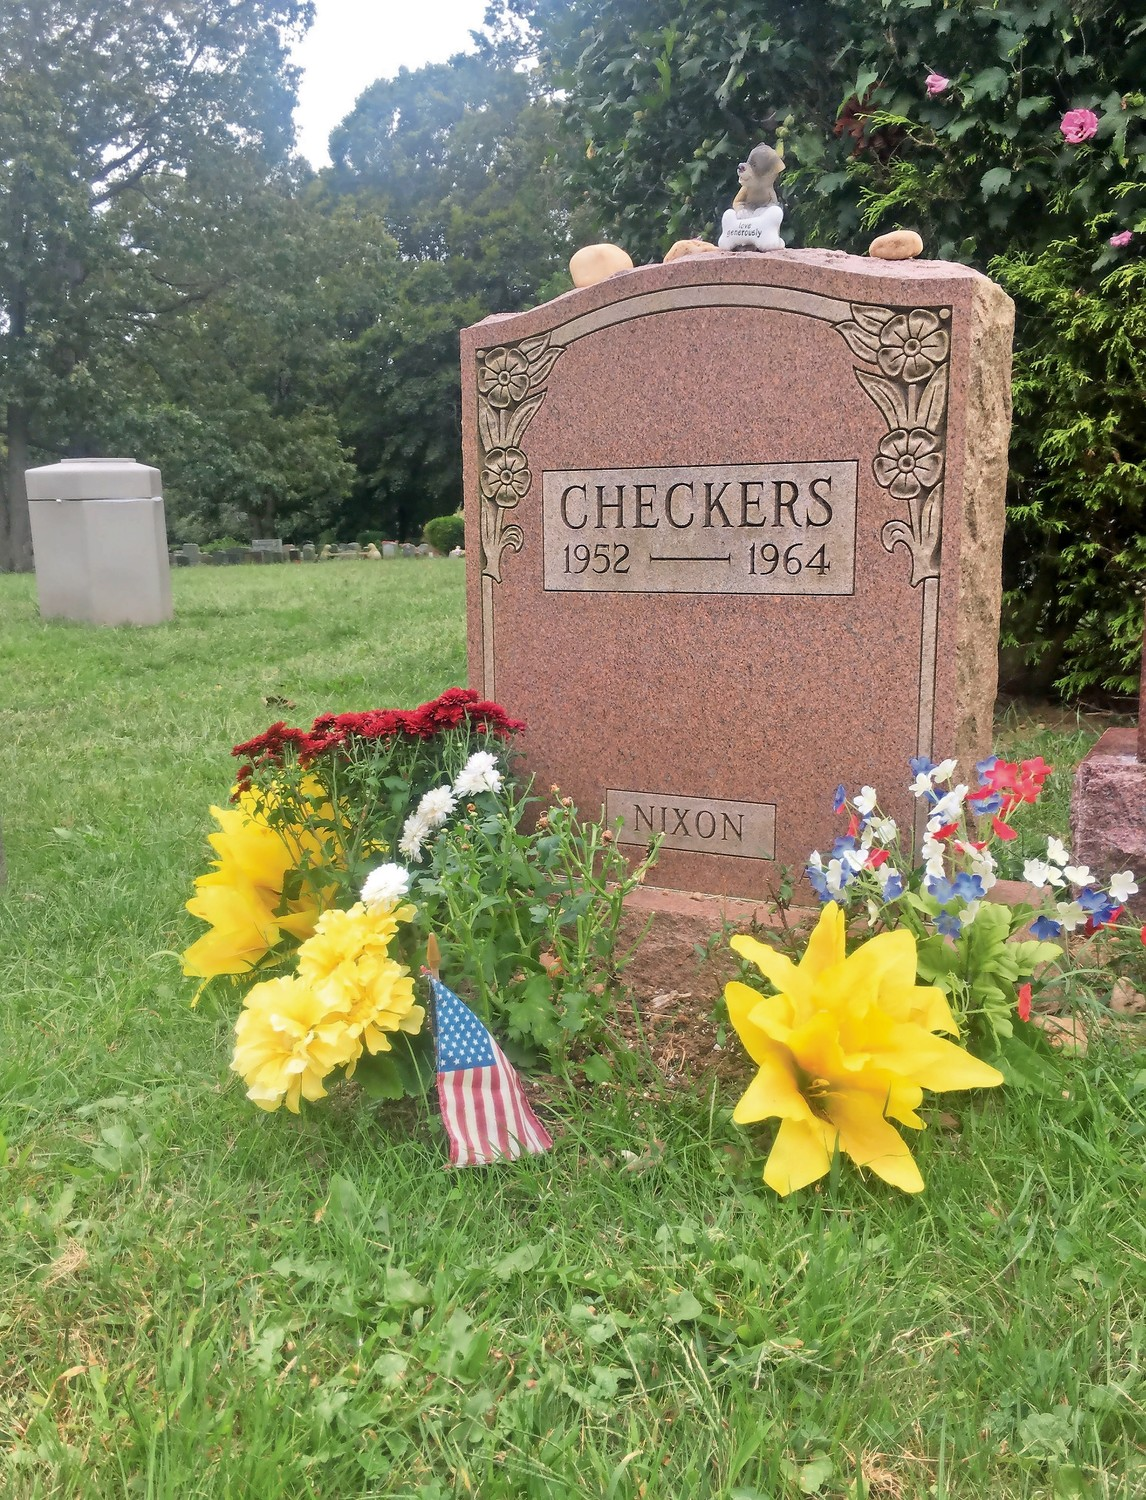 Checkers Nixon, President Richard Nixon's famed dog, is buried at Bideawee Pet Memorial Park.